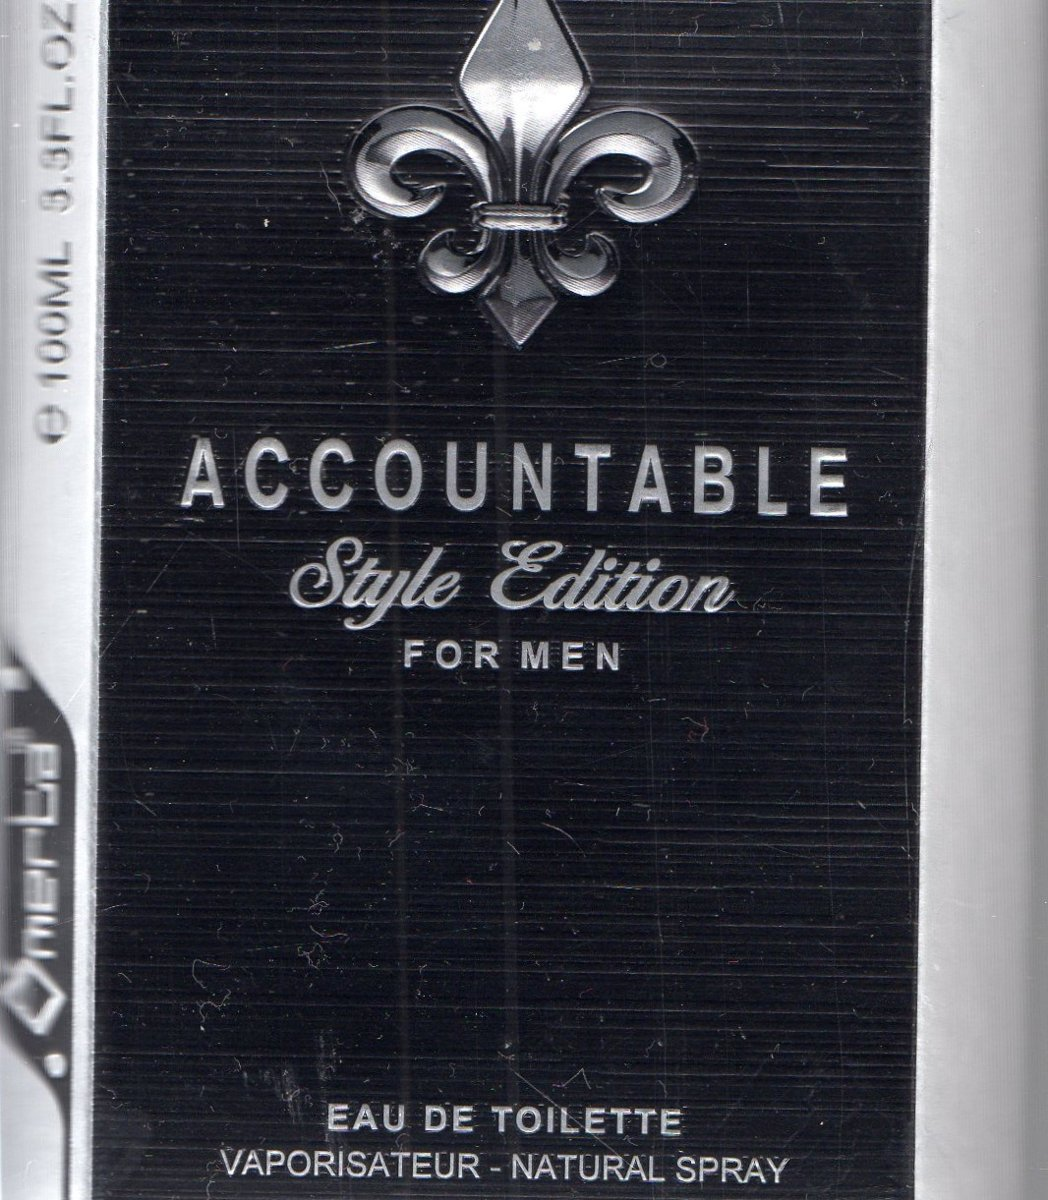 accountable style edition for men  eau de toilette 100 ml